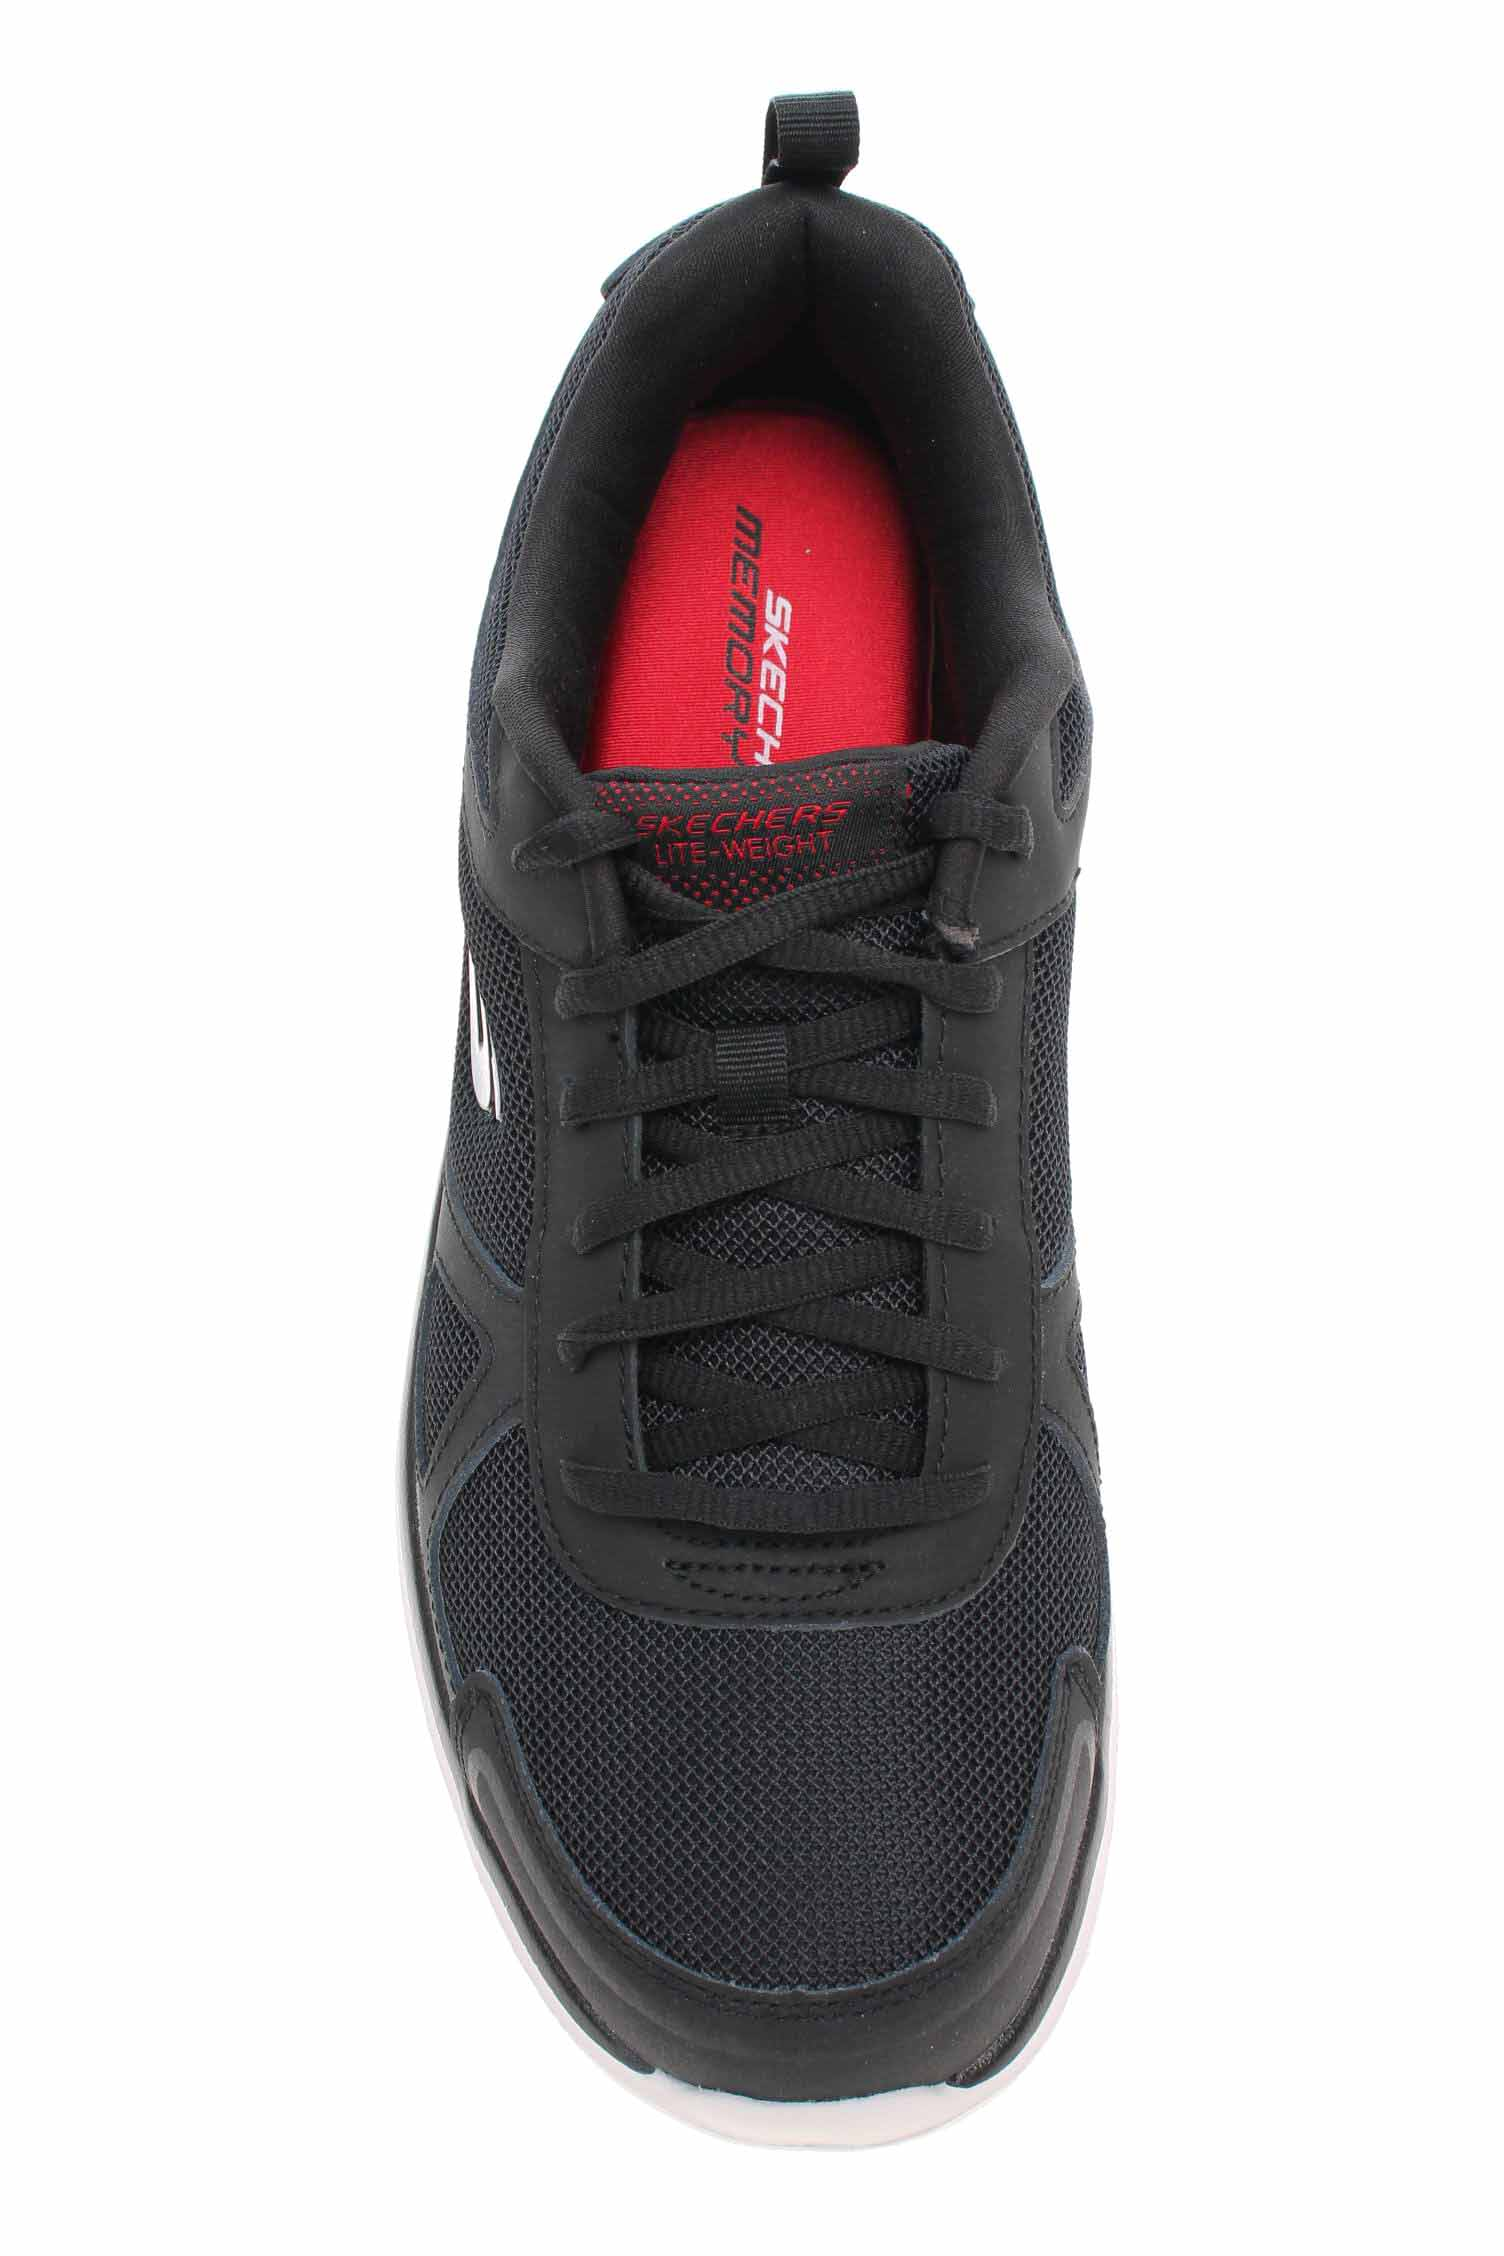 1f6b0defeb4 Skechers Track - Scloric black-red